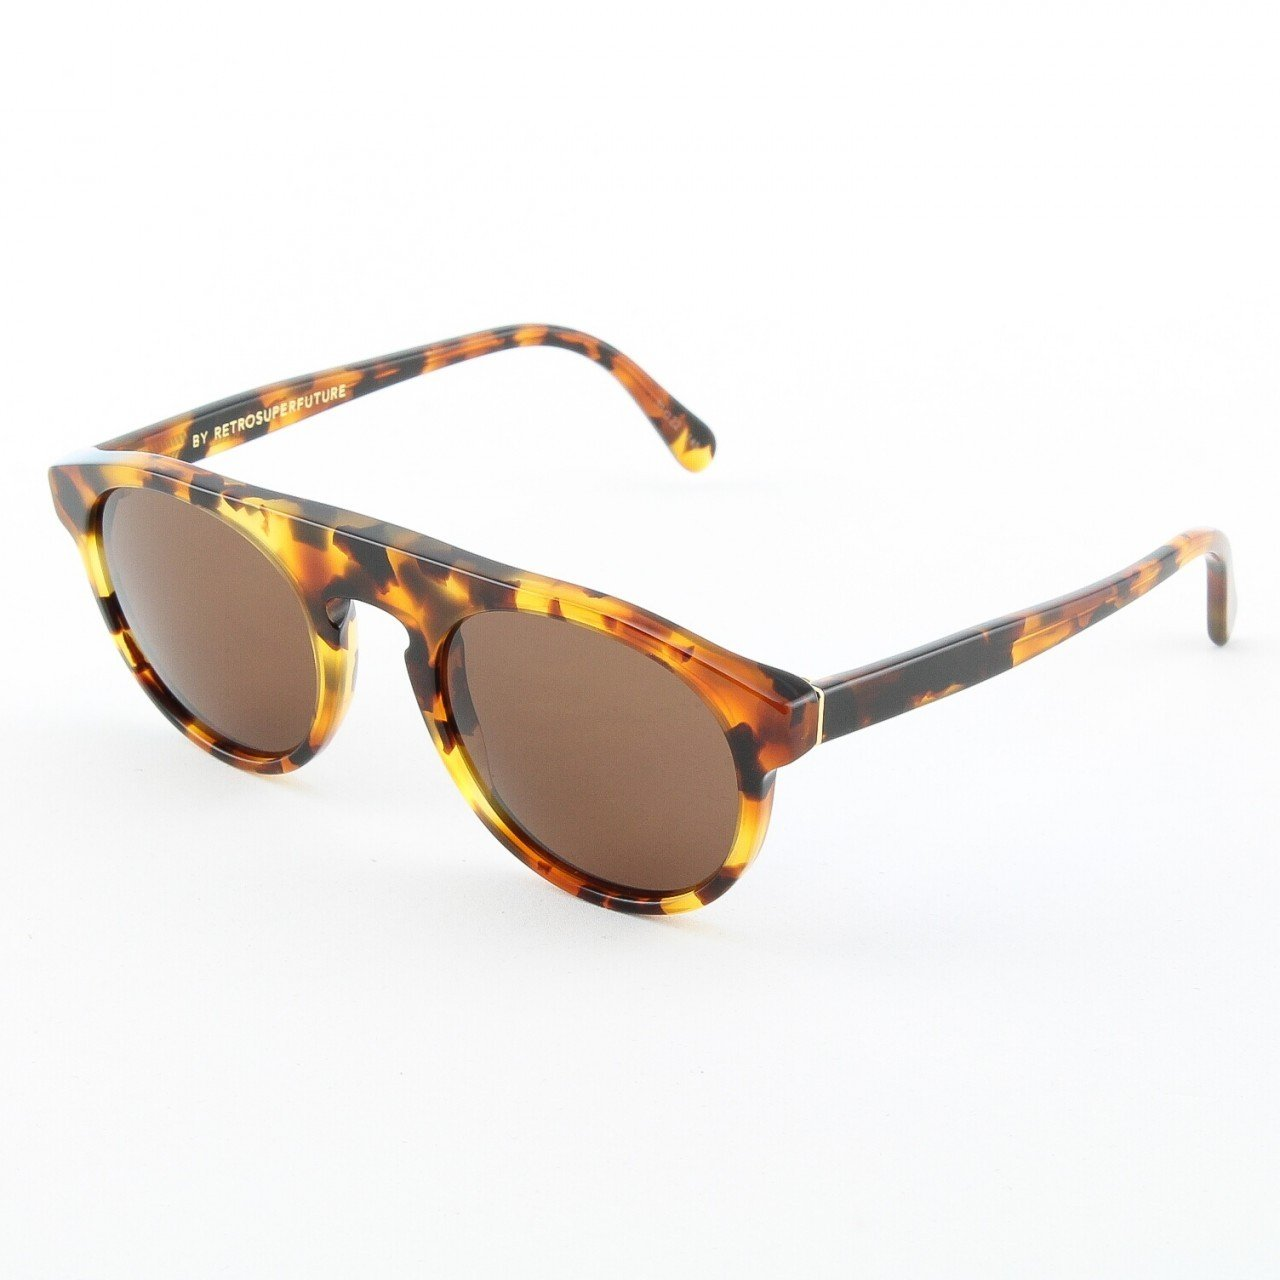 Super Racer 486/3T Sunglasses by RETROSUPERFUTURE Color Dark Havana with Black Zeiss Lenses